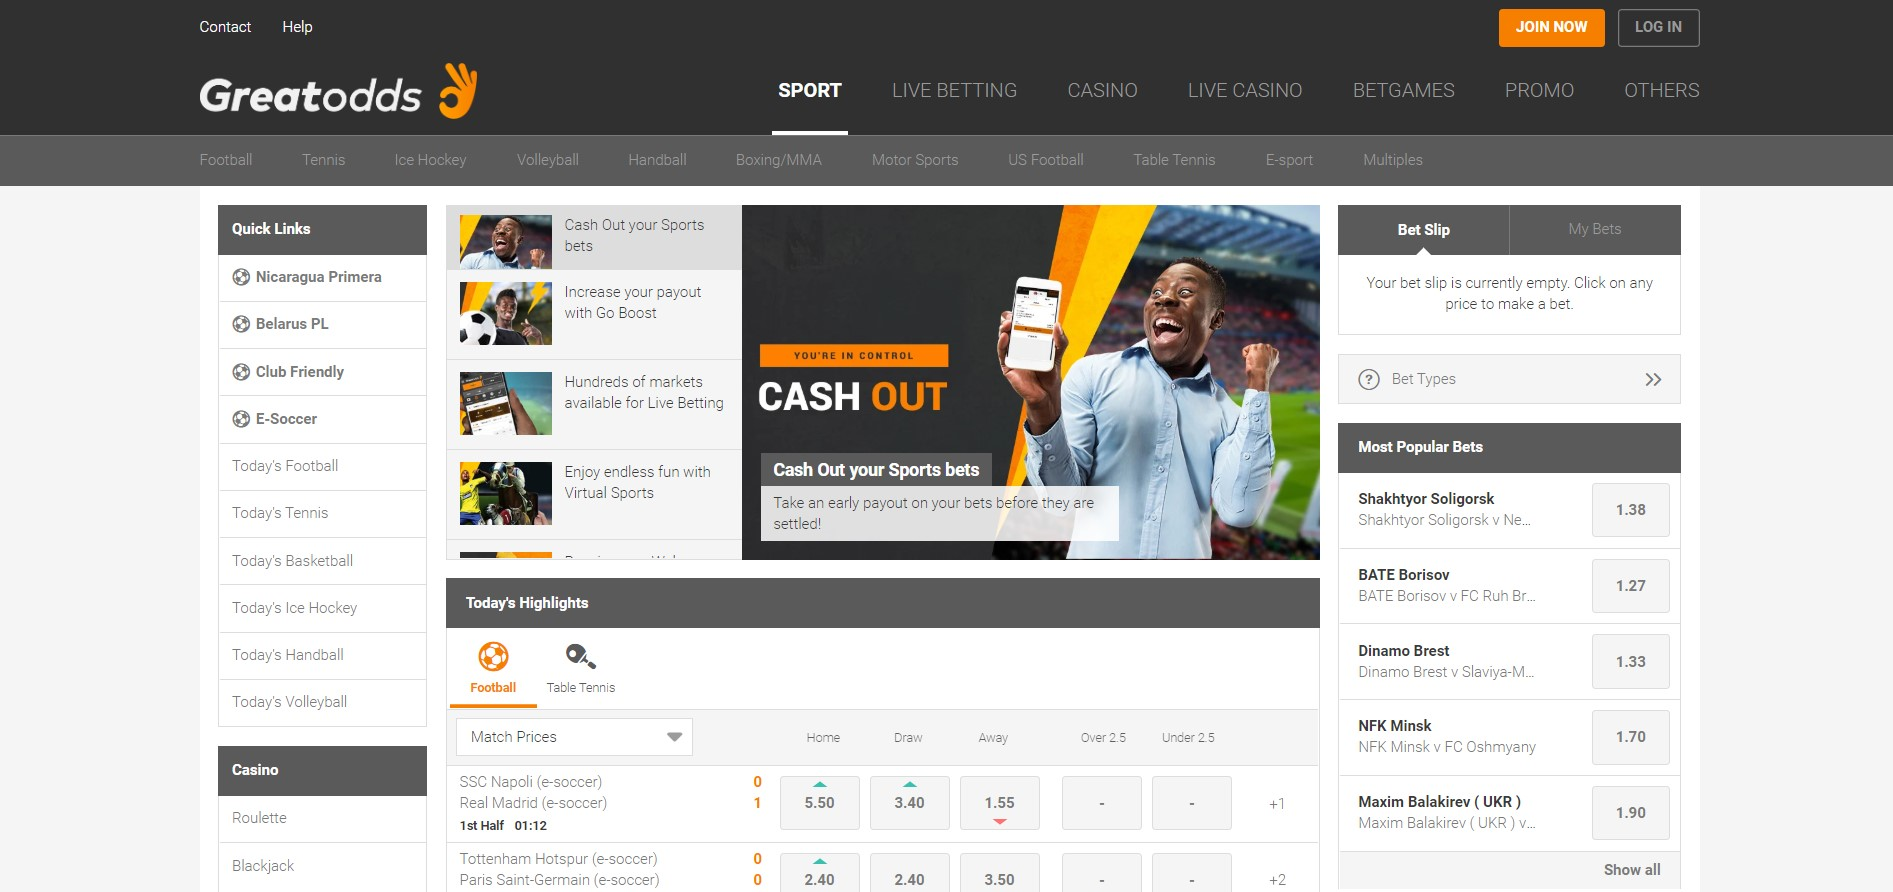 Greatodds sports betting site